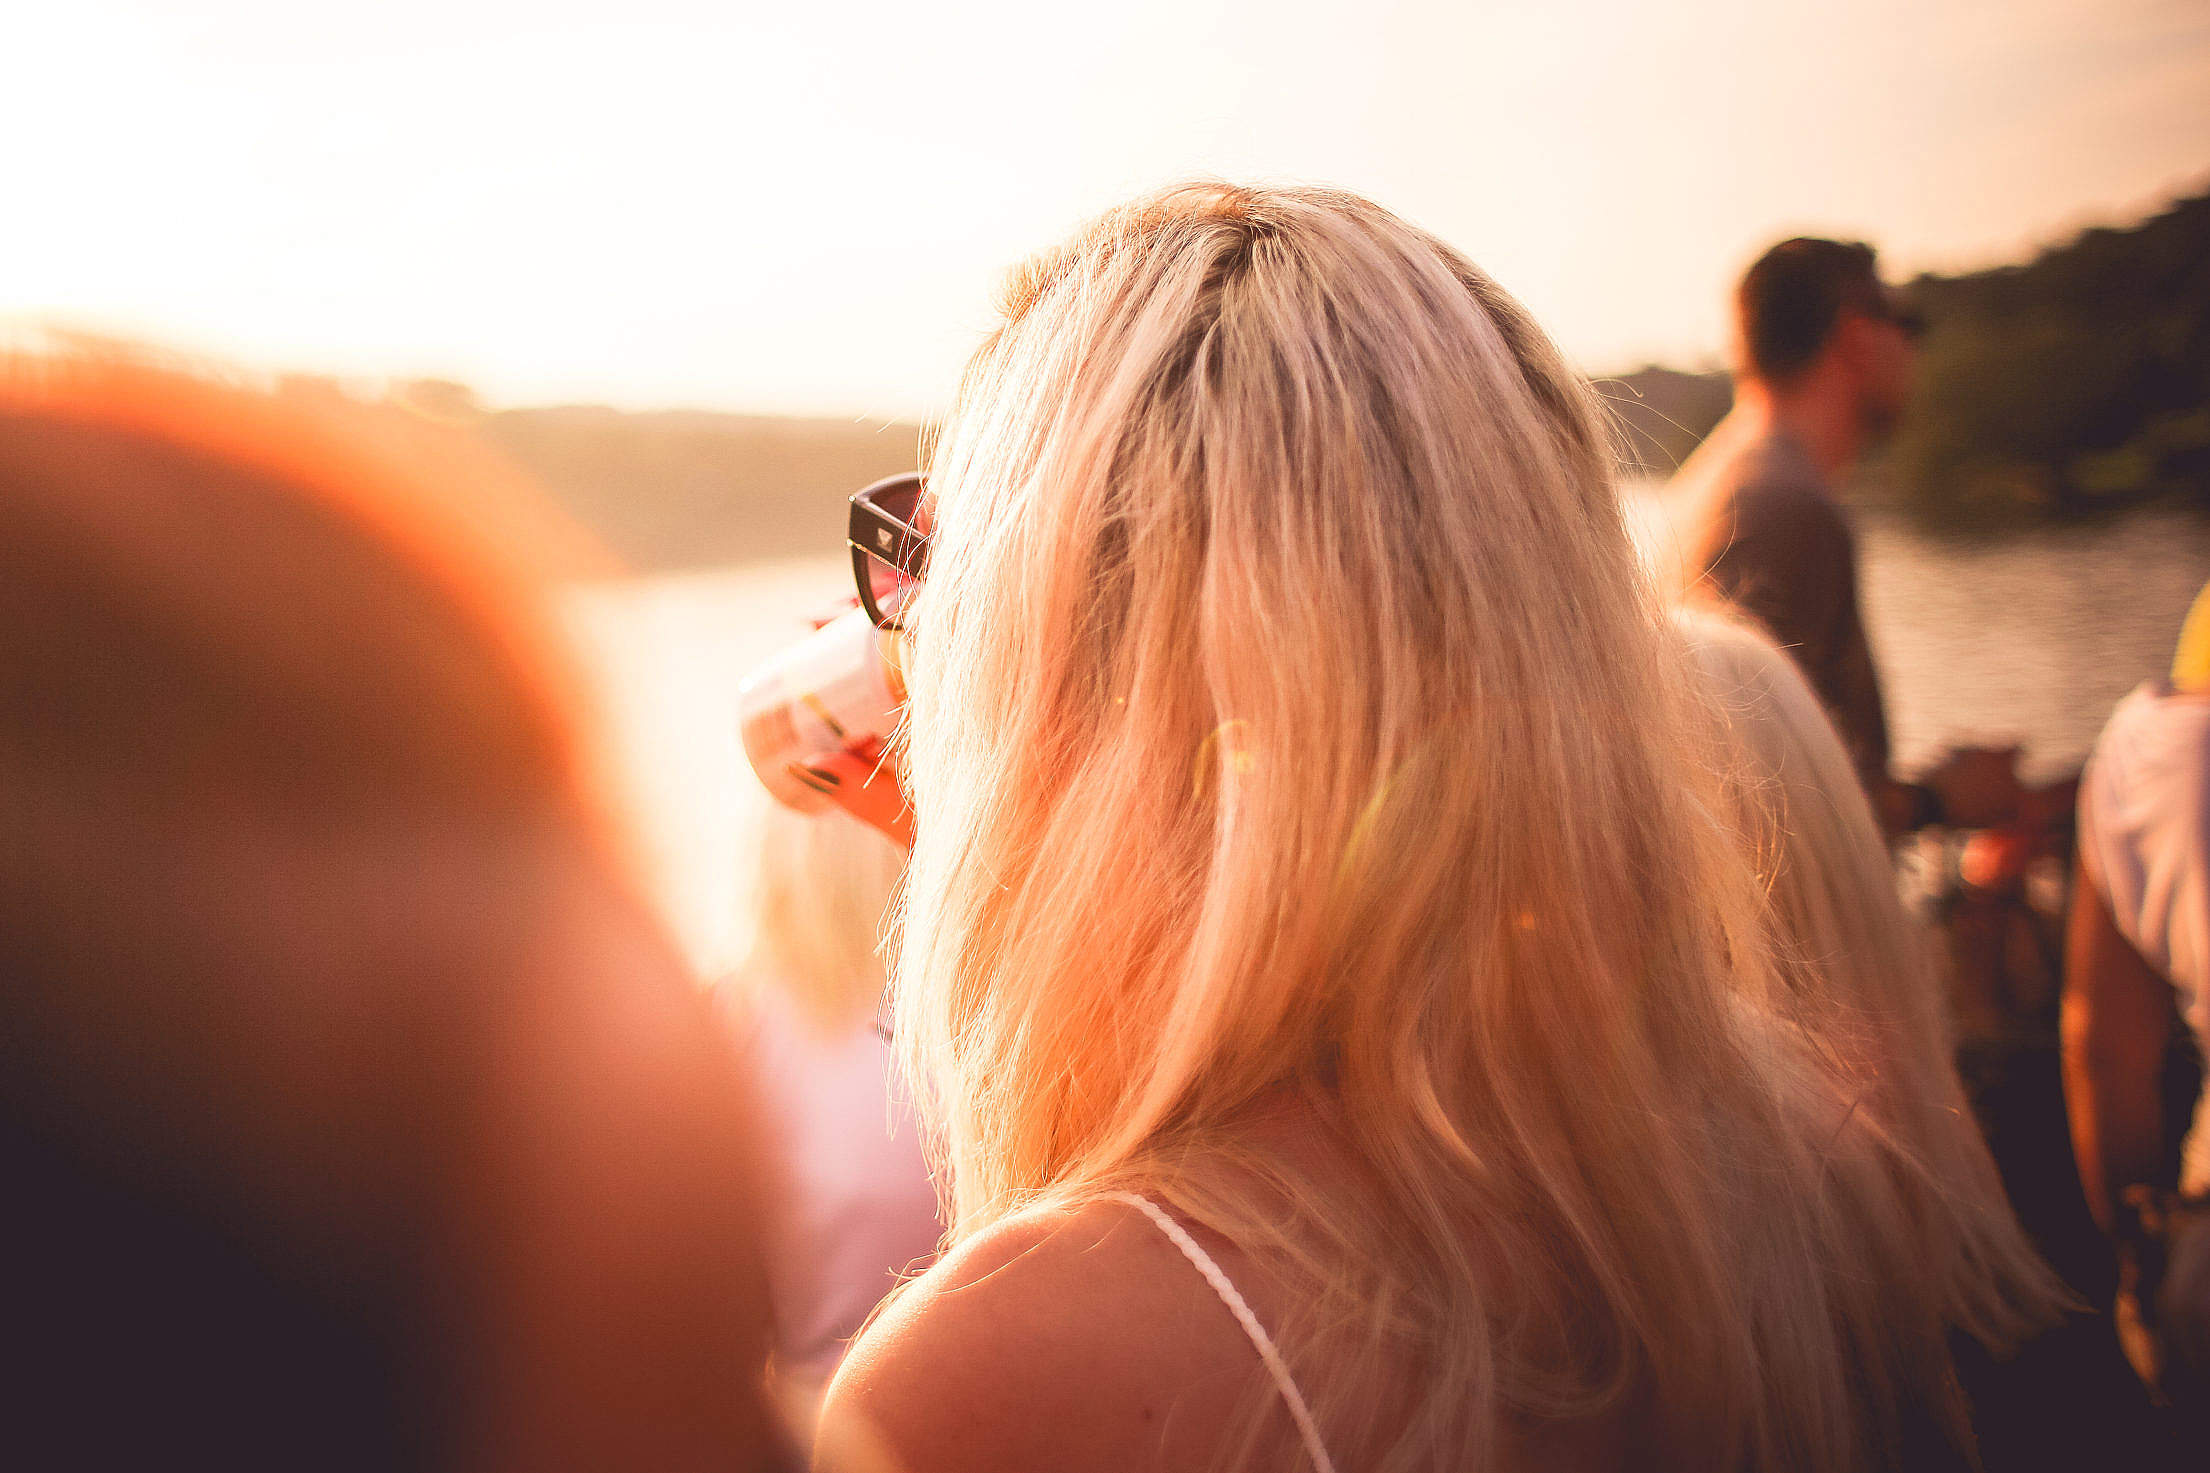 Girl Drinking in Sunlights Free Stock Photo